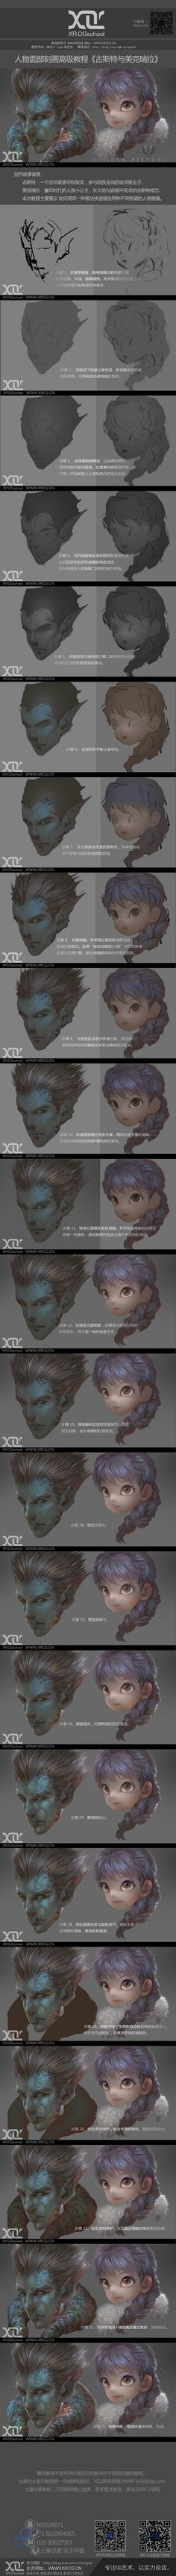 [College] or facial portrayed XRCG advanced tutorials - Shaw ... @ advance on the basis of the collected art students (354 Figure) _ petal game